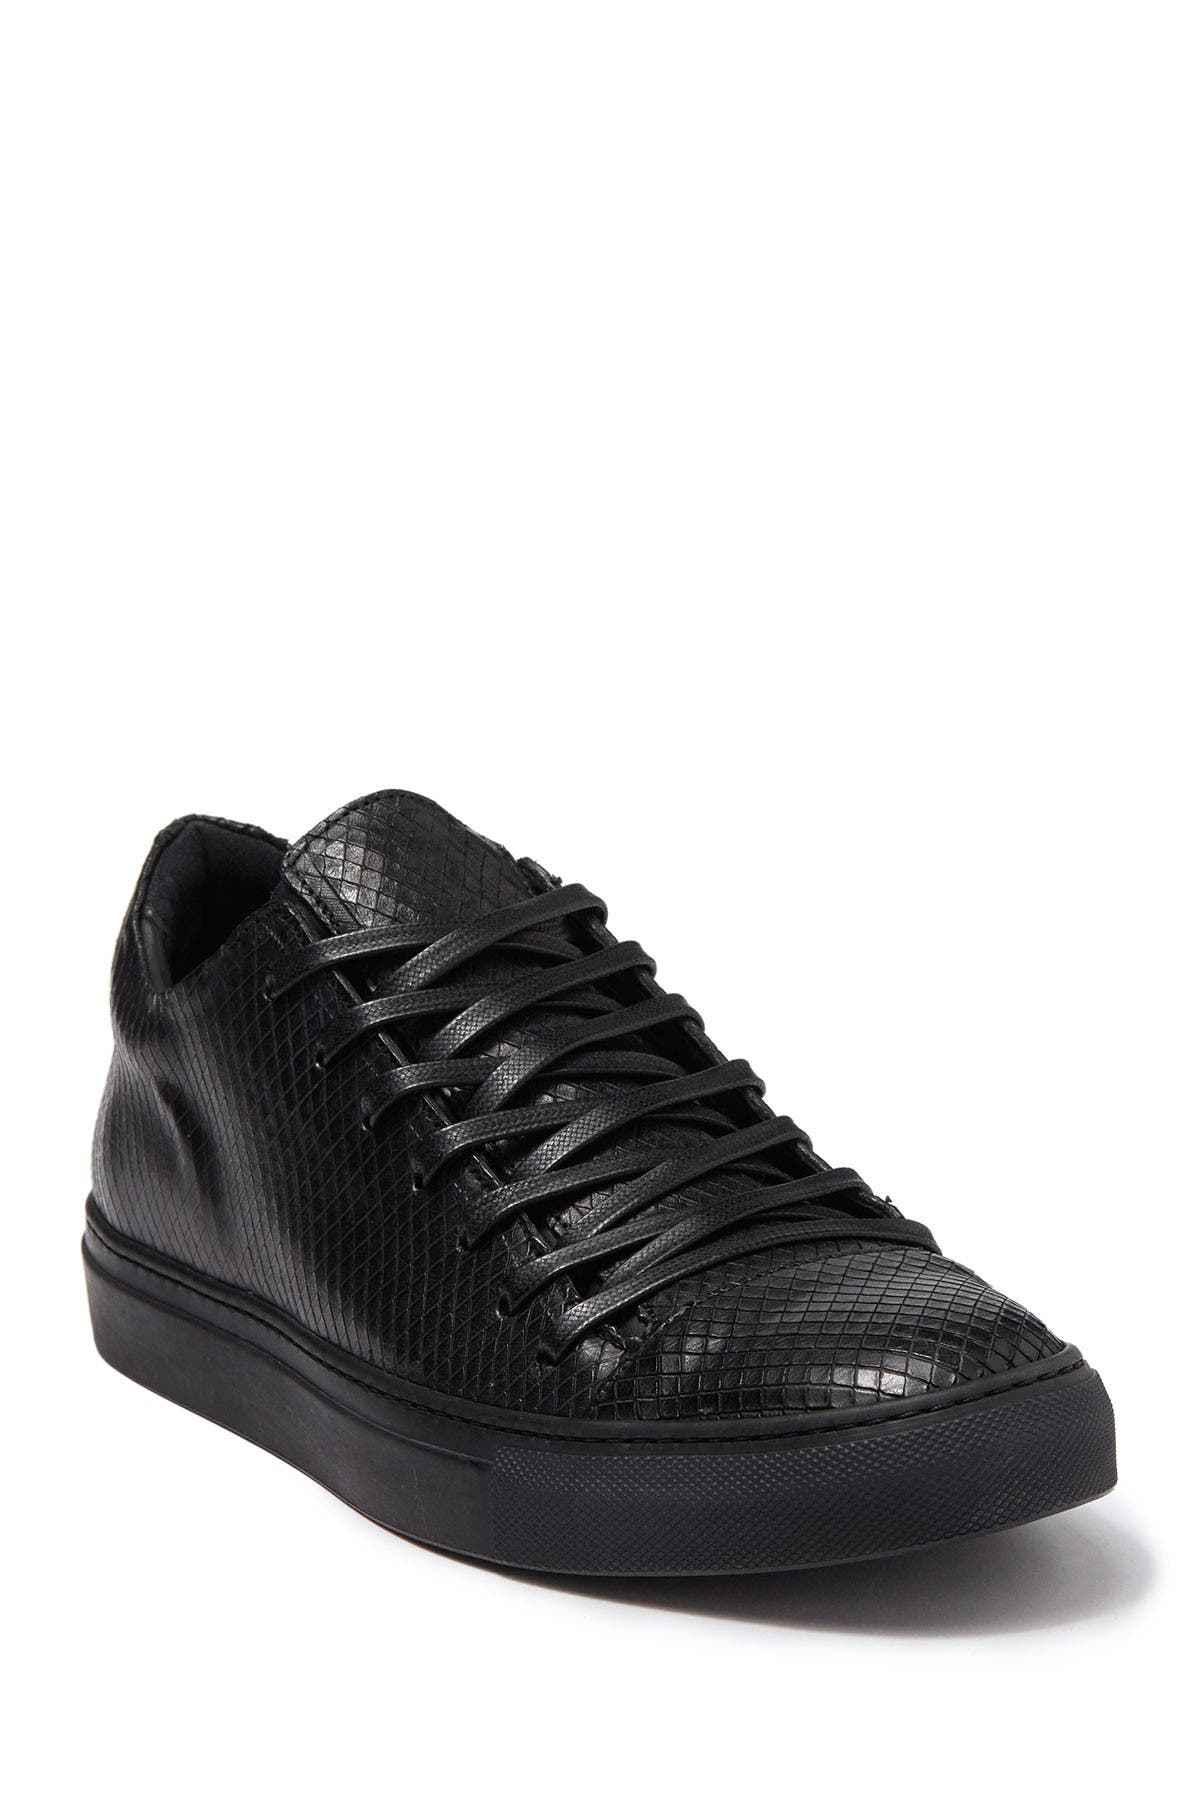 Image of John Varvatos Collection Reed Snake-Embossed Leather Sneaker